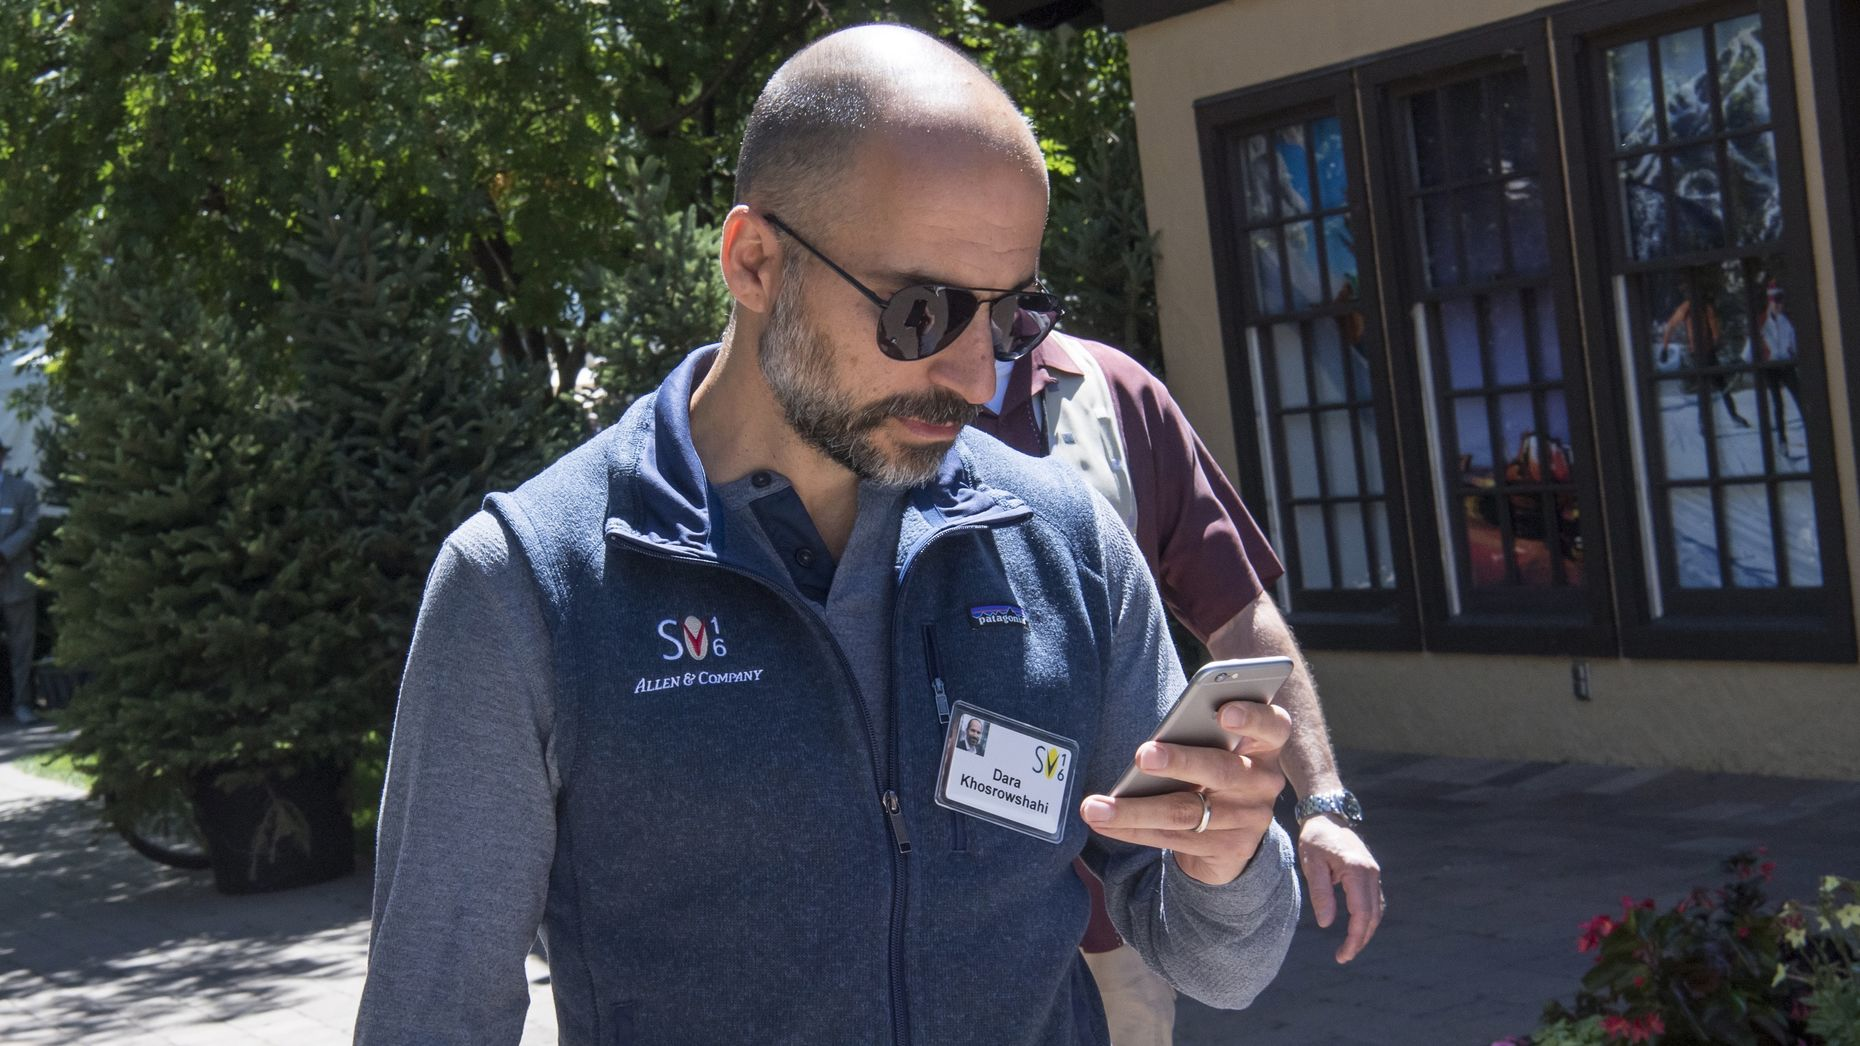 Uber's new CEO Dara Khosrowshahi. Photo by Bloomberg.